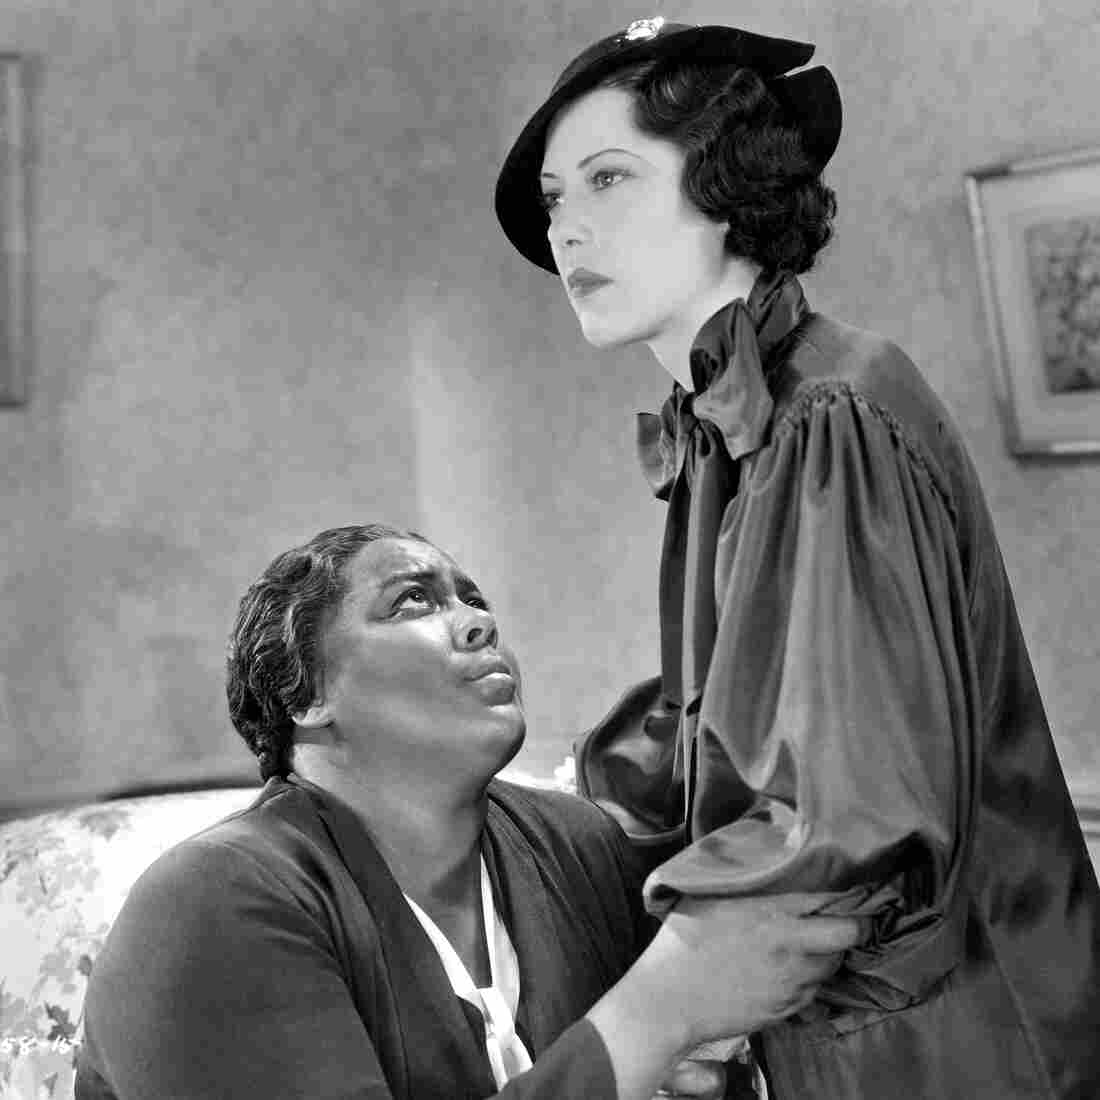 In the 1934 film Imitation of Life, Fredi Washington (right) plays the role of Peola, an African-American woman who decides to pass as white.